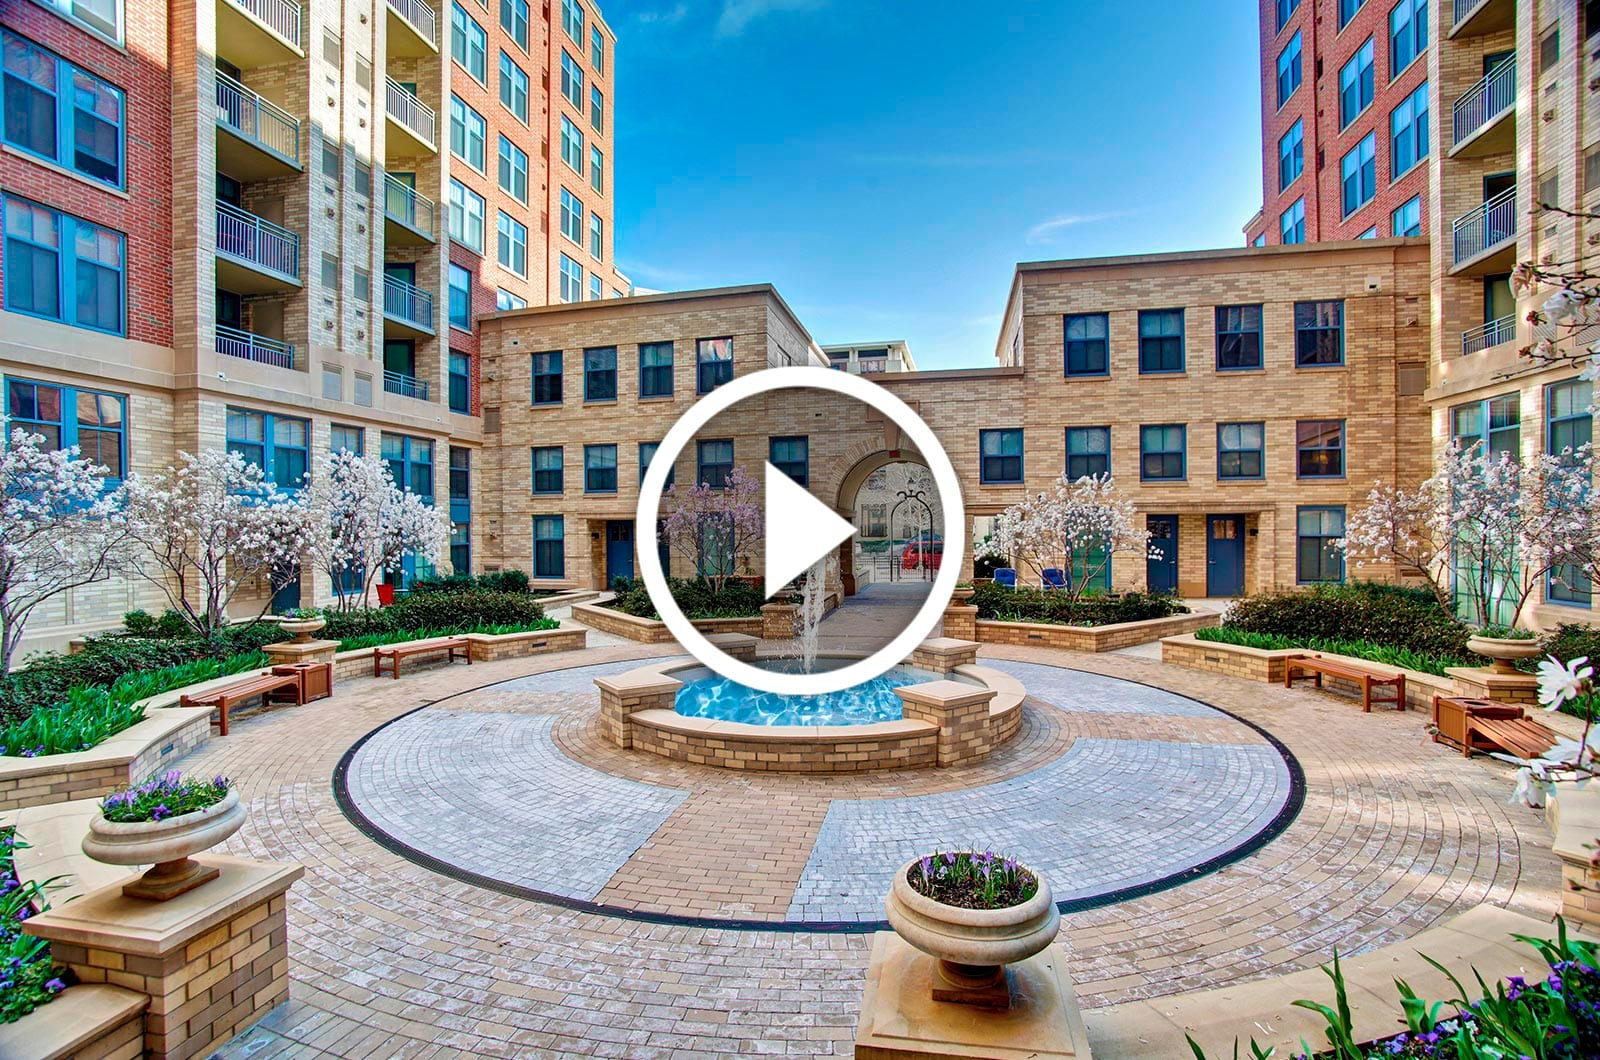 CBRE-Sample-Tour | CBRE Multi-Family Virtual Tours | CBRE Virtual Tour | CBRE 360 Photography